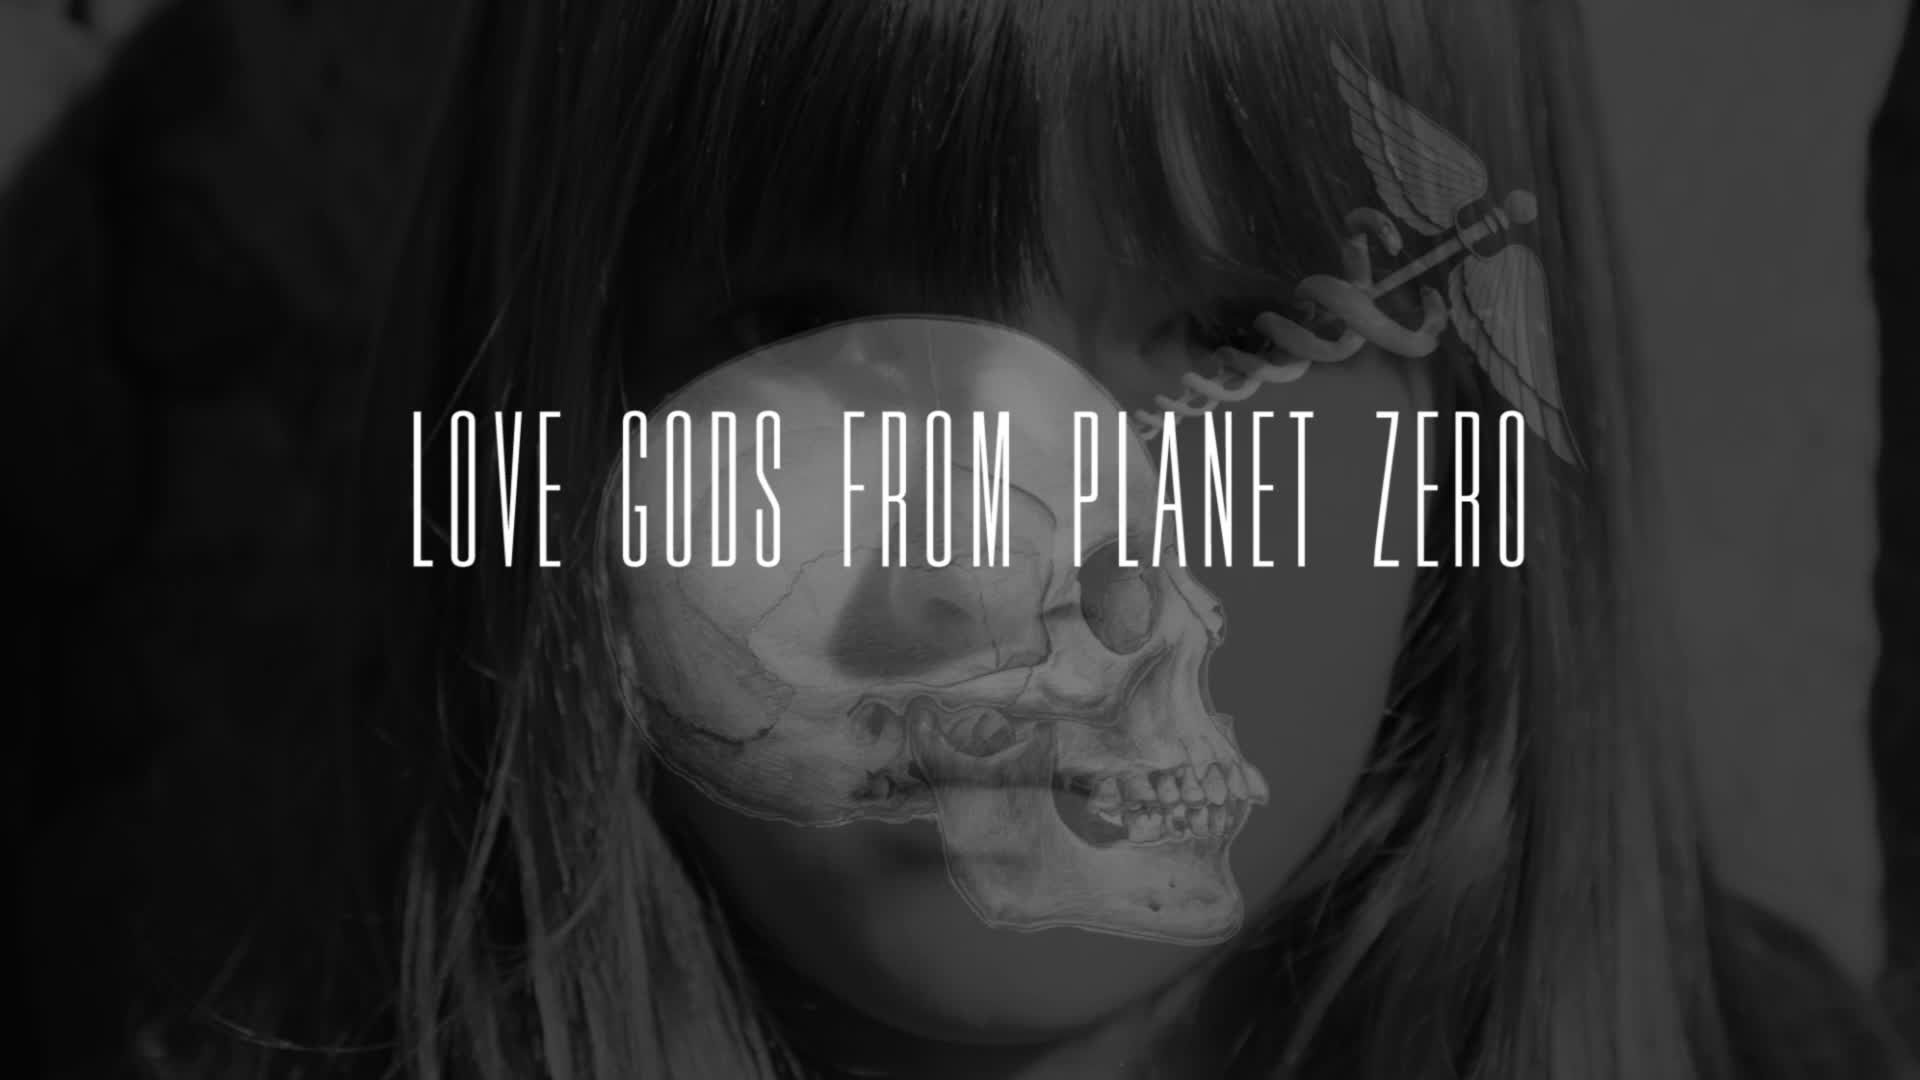 Love Gods from Planet Zero full movie download 1080p hd